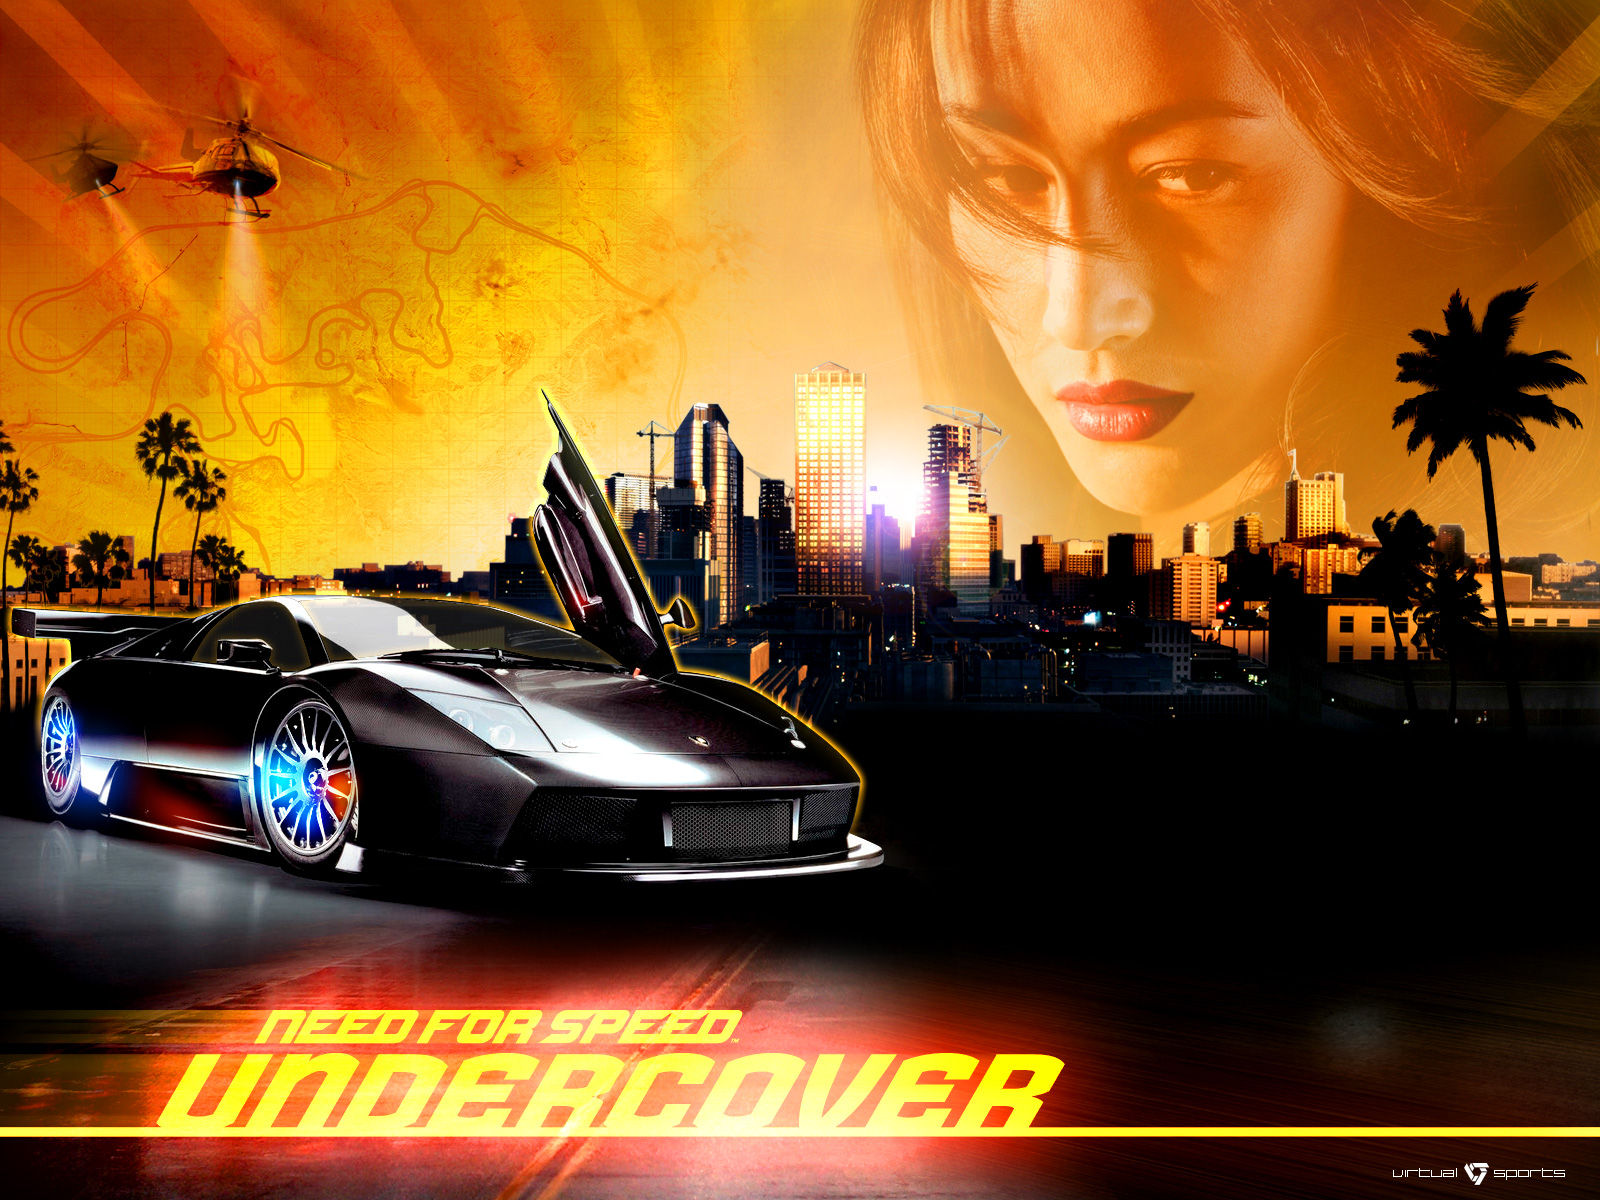 Nfs Most Wanted 2012 Cars Wallpapers 14 Need For Speed Undercover Hd Wallpapers Backgrounds